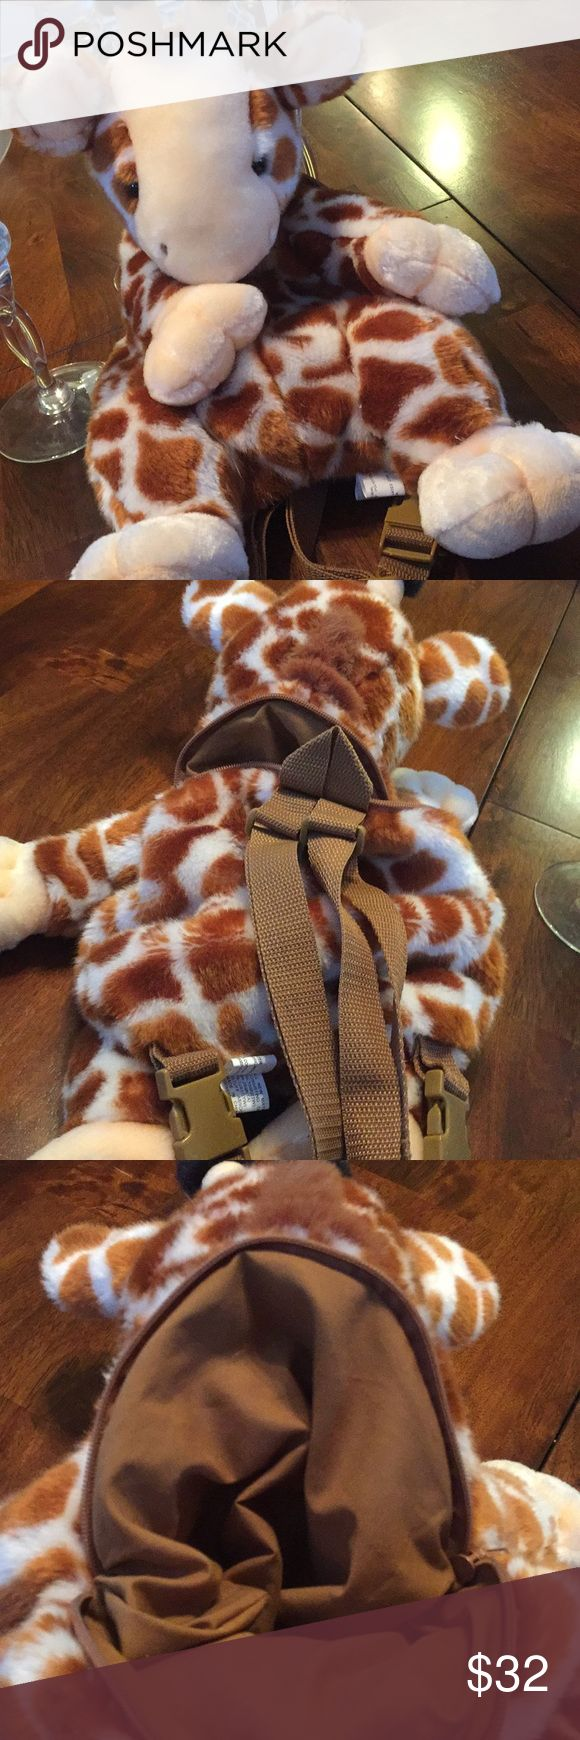 💜Giraffe Lovers Backpack SALE!💜 Super adorable giraffe backpack for all the giraffe lovers!  Super soft and cuddly! Back of backpack has zipper and storage and backpack straps. Super cute and one of a kind.  Never used; brand new!!   A perfect present! Accessories Bags